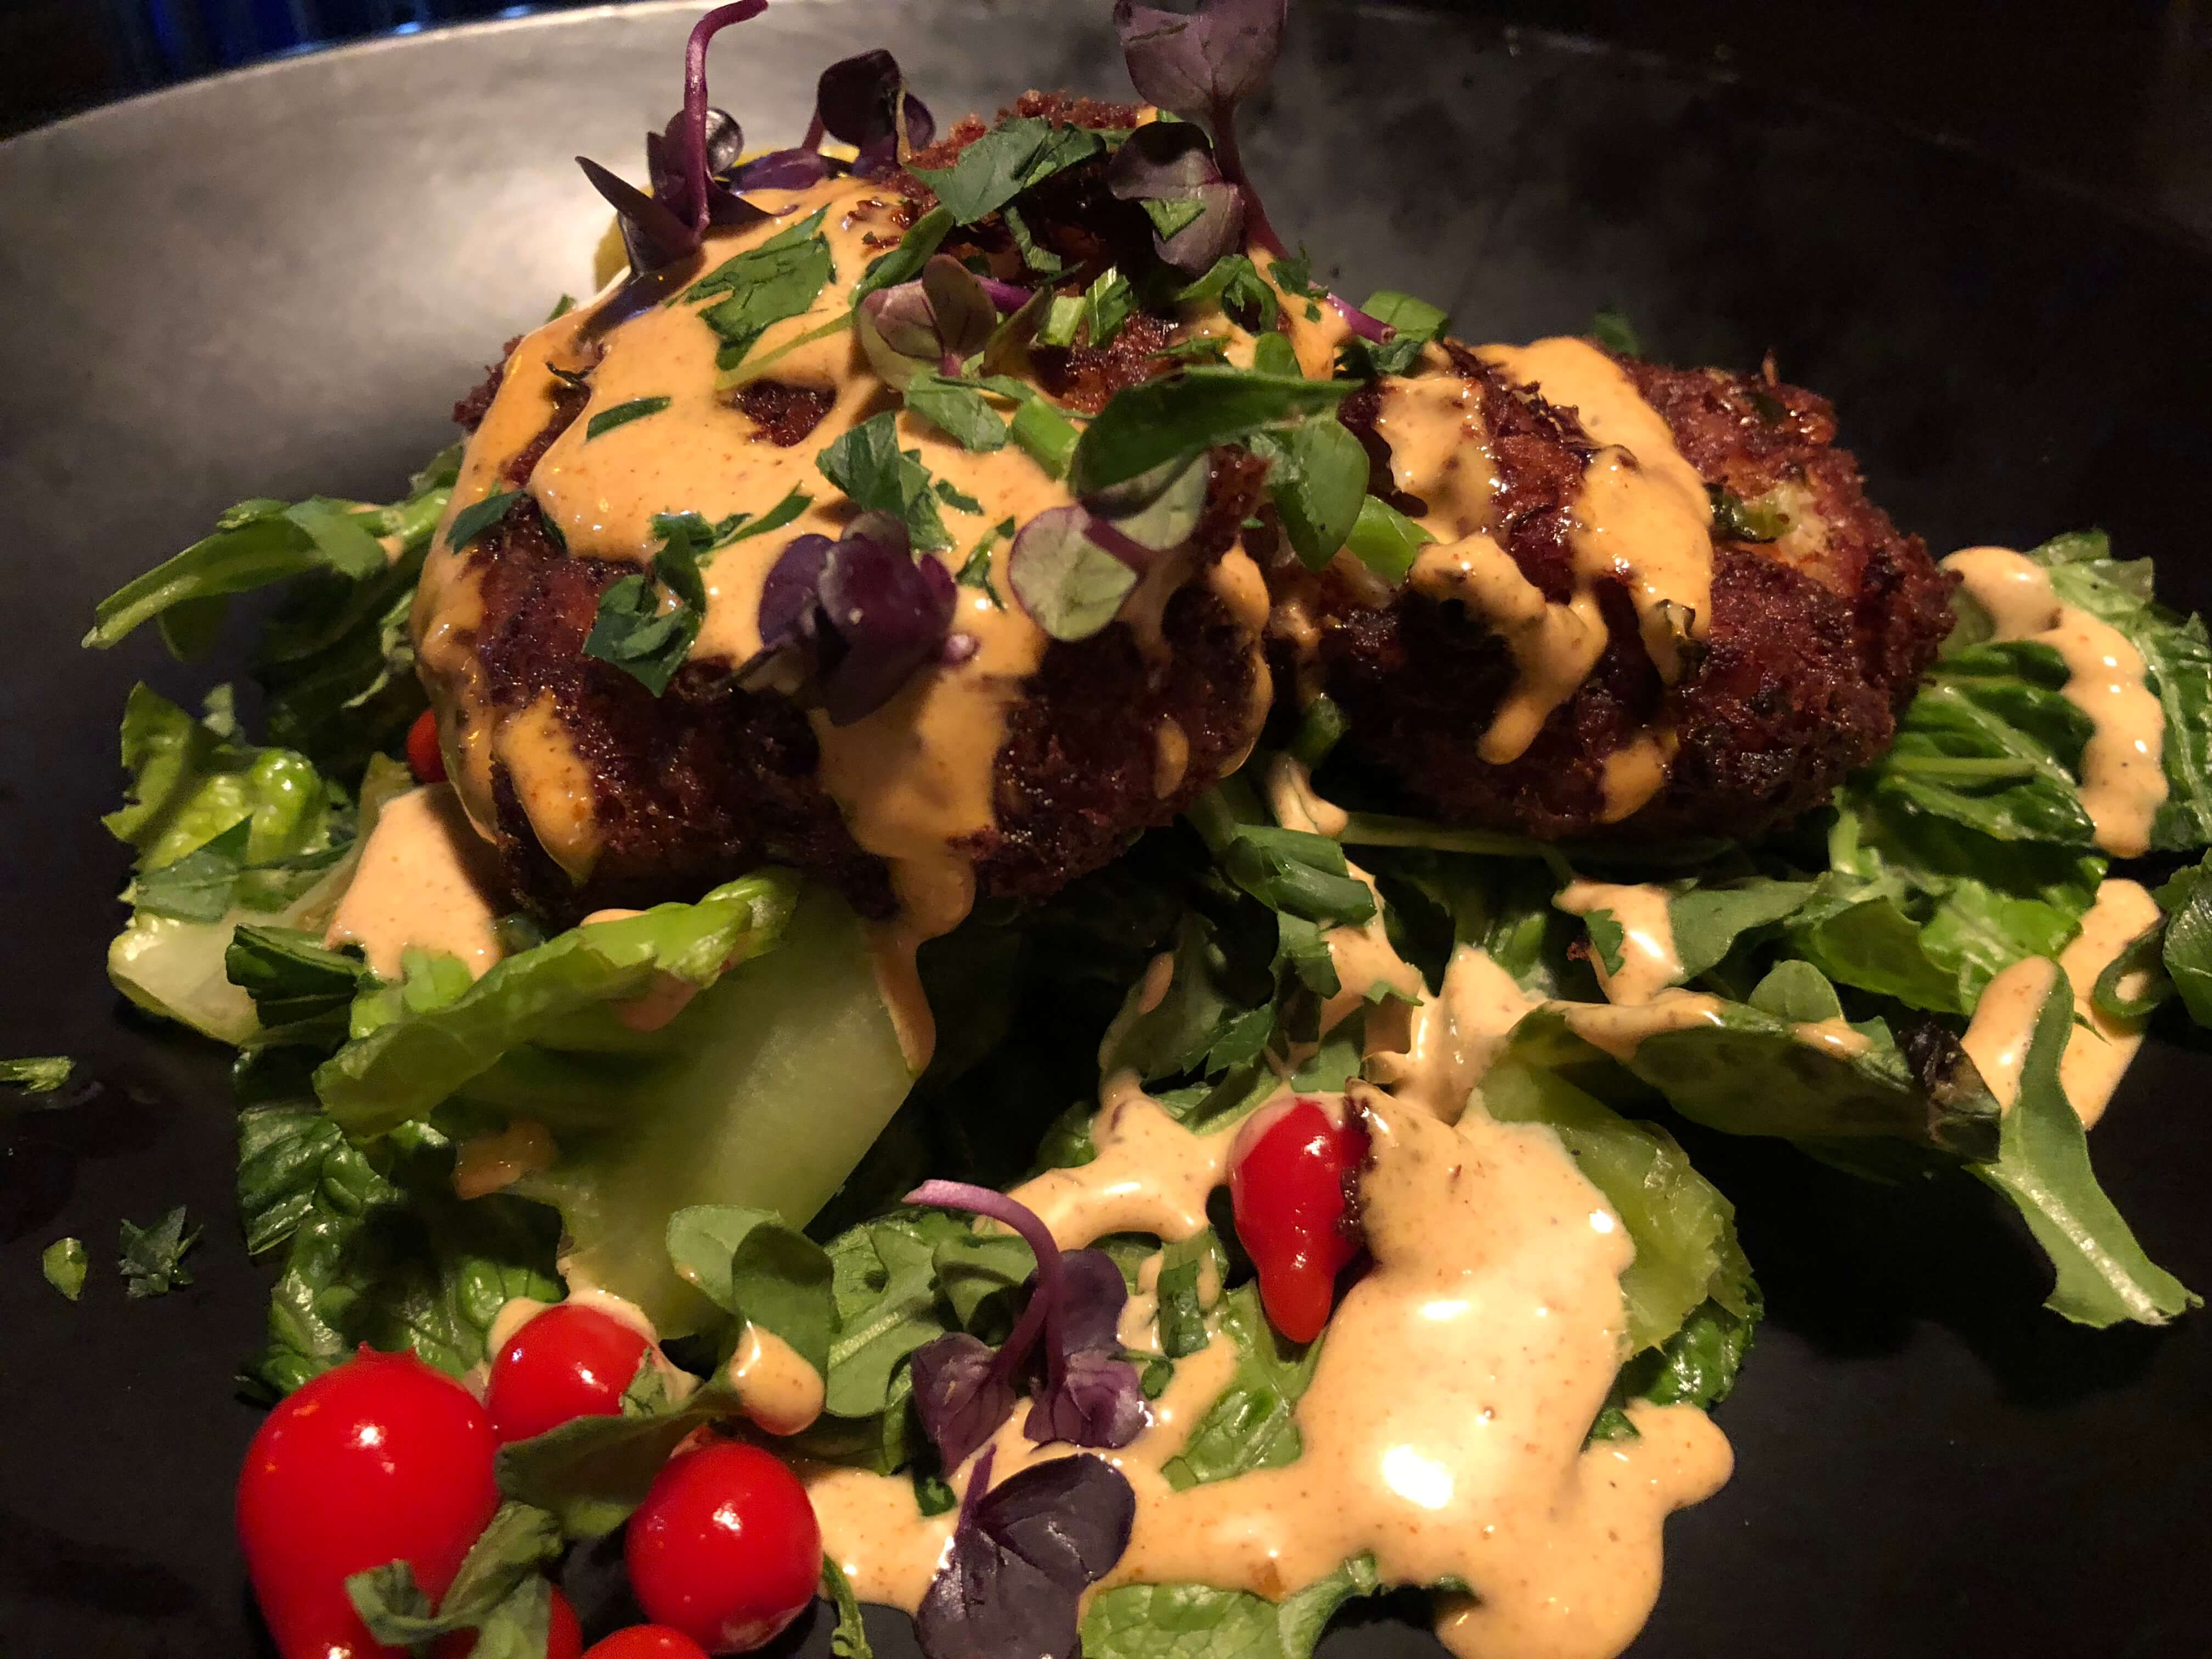 Crab and Lobster Cakes at Fire Tower